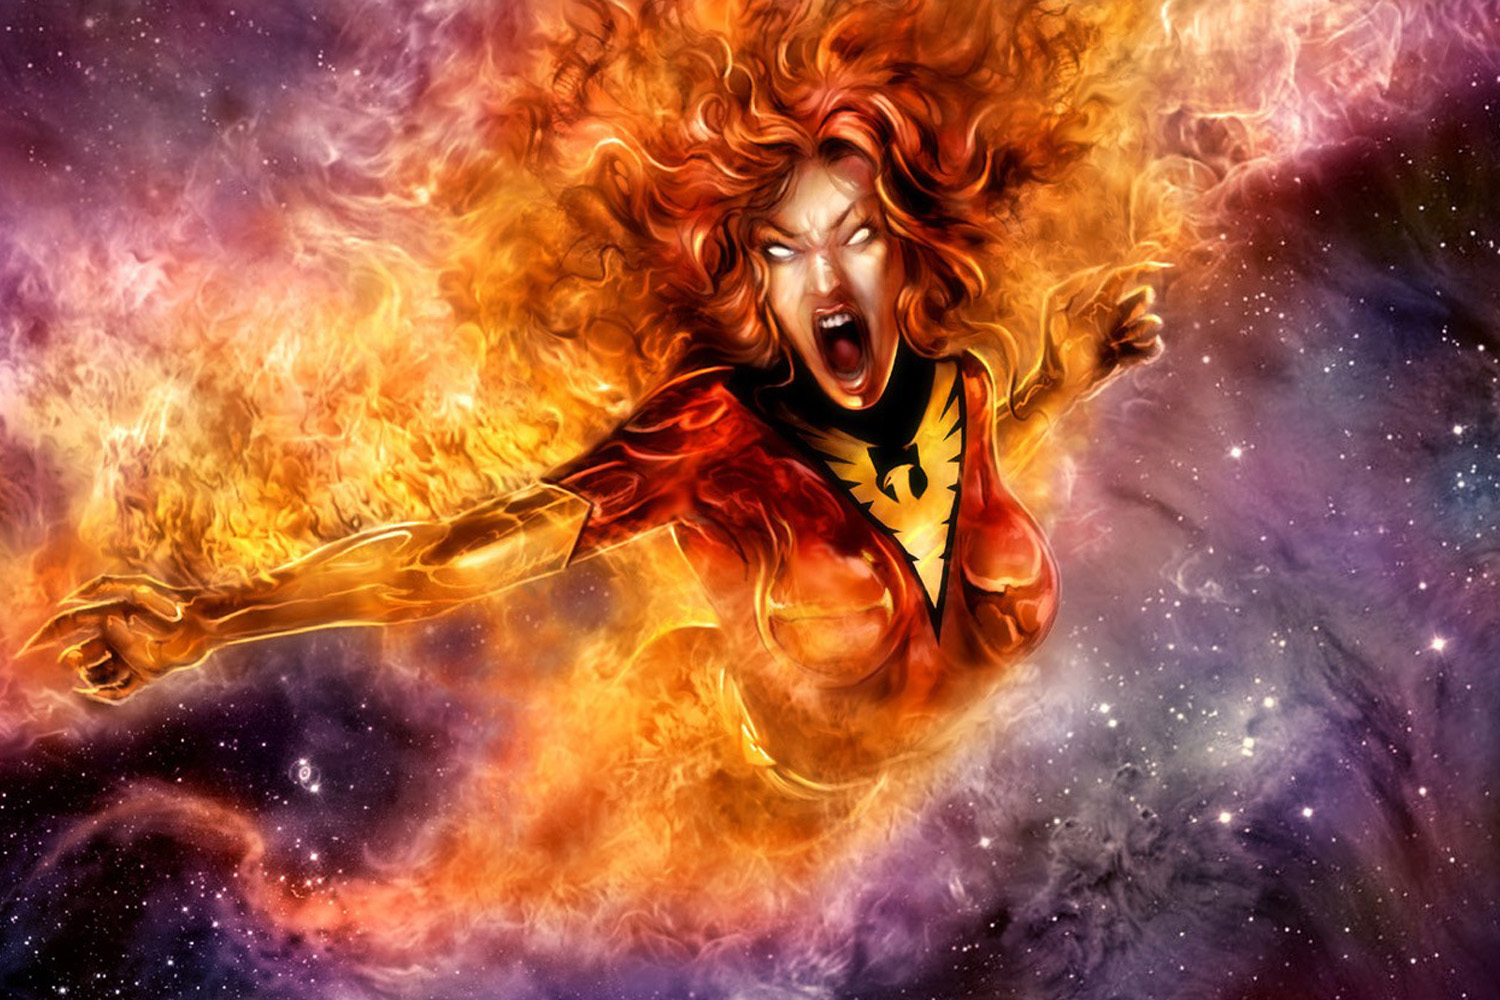 22 phoenix hd wallpapers background images   wallpaper abyss